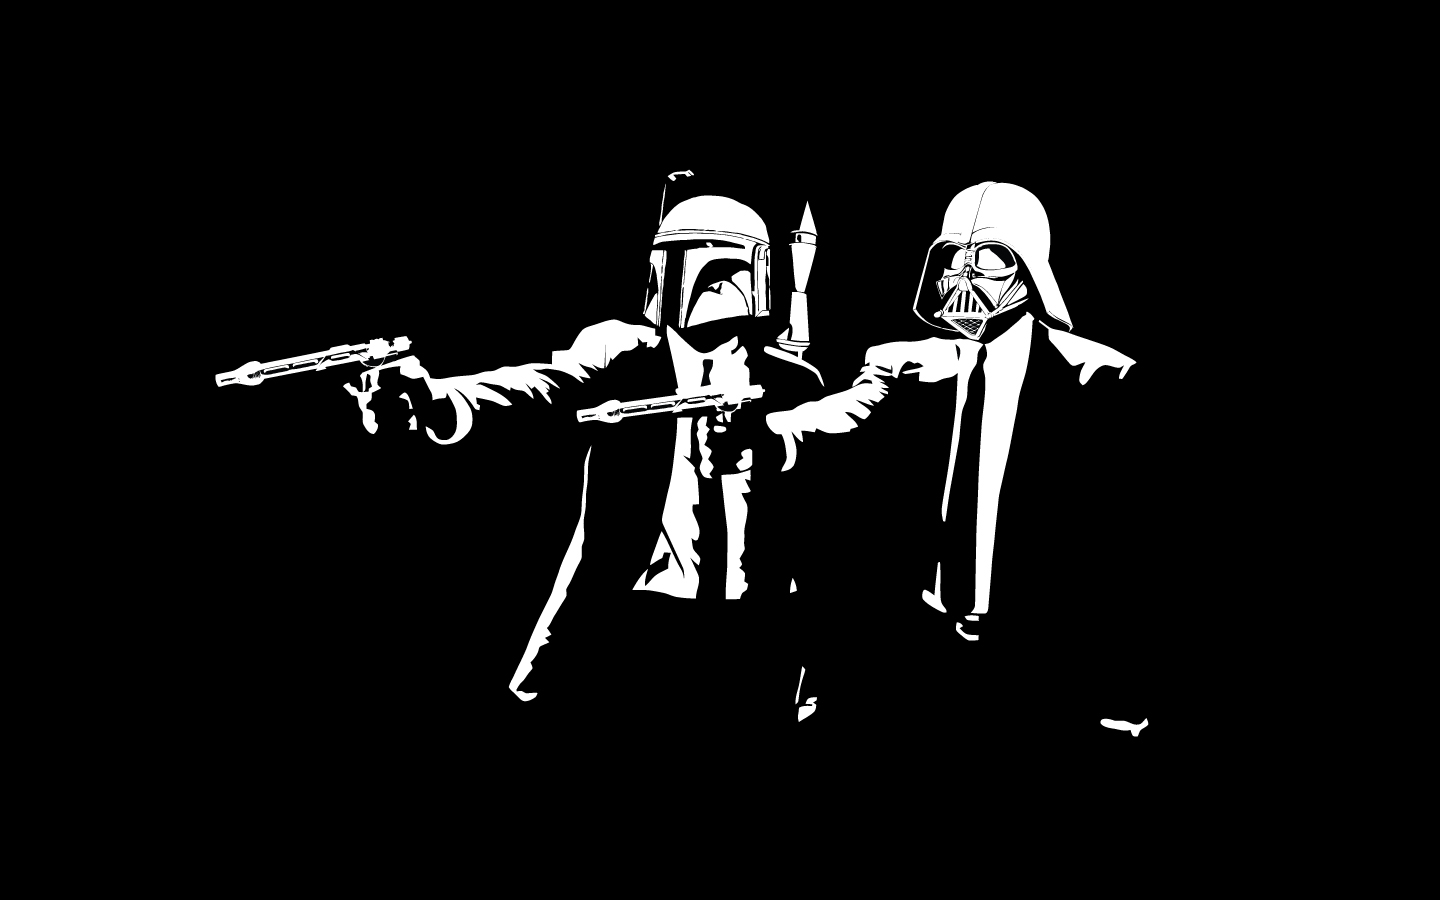 Star Wars Funny Wallpaper-Pulp Fiction Parody